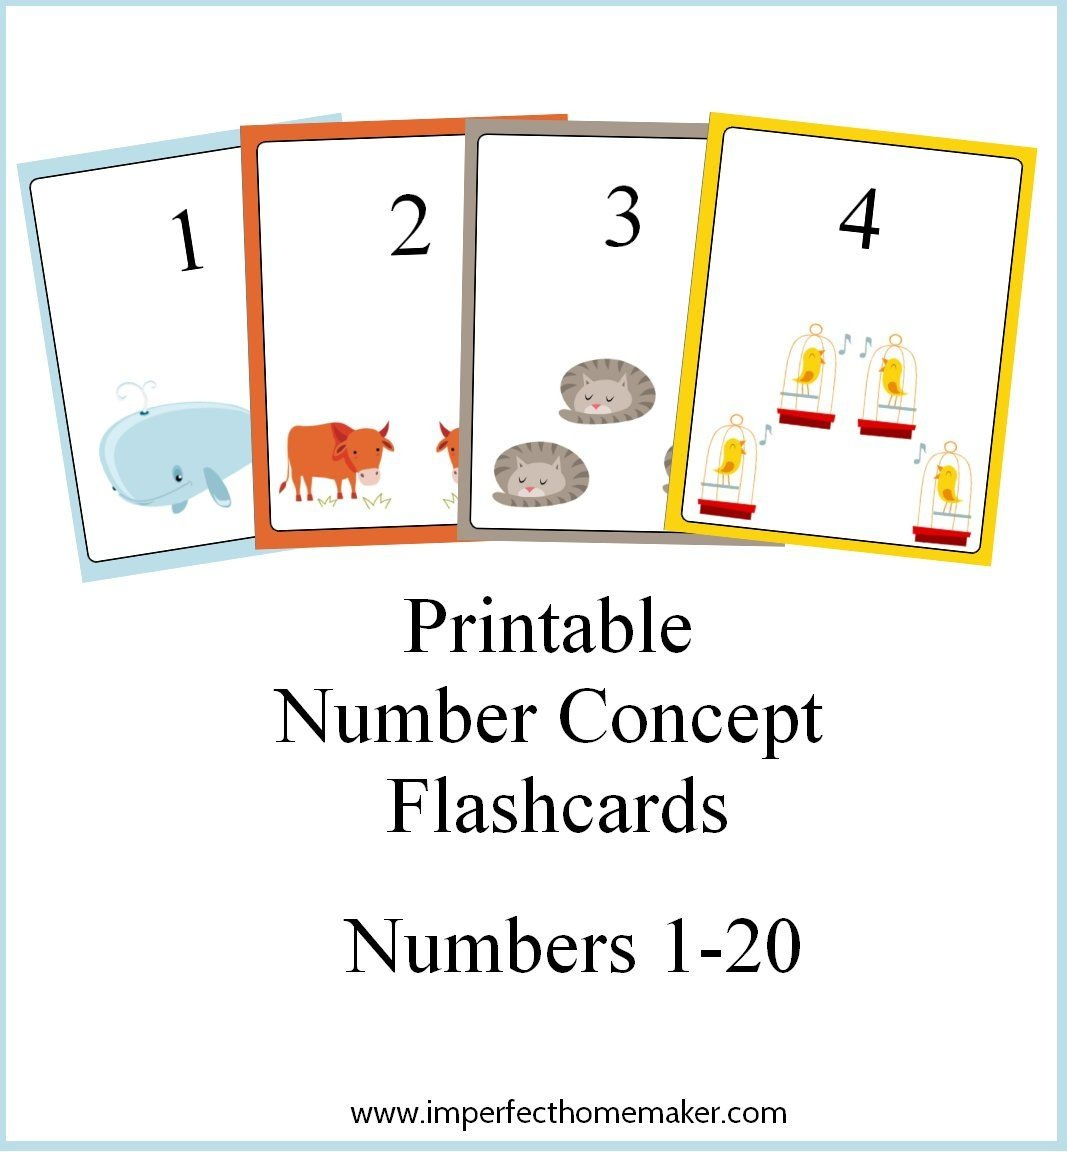 Printable Number Concept Flashcards | Free Number Printables For - Free Printable Number Flashcards 1 30